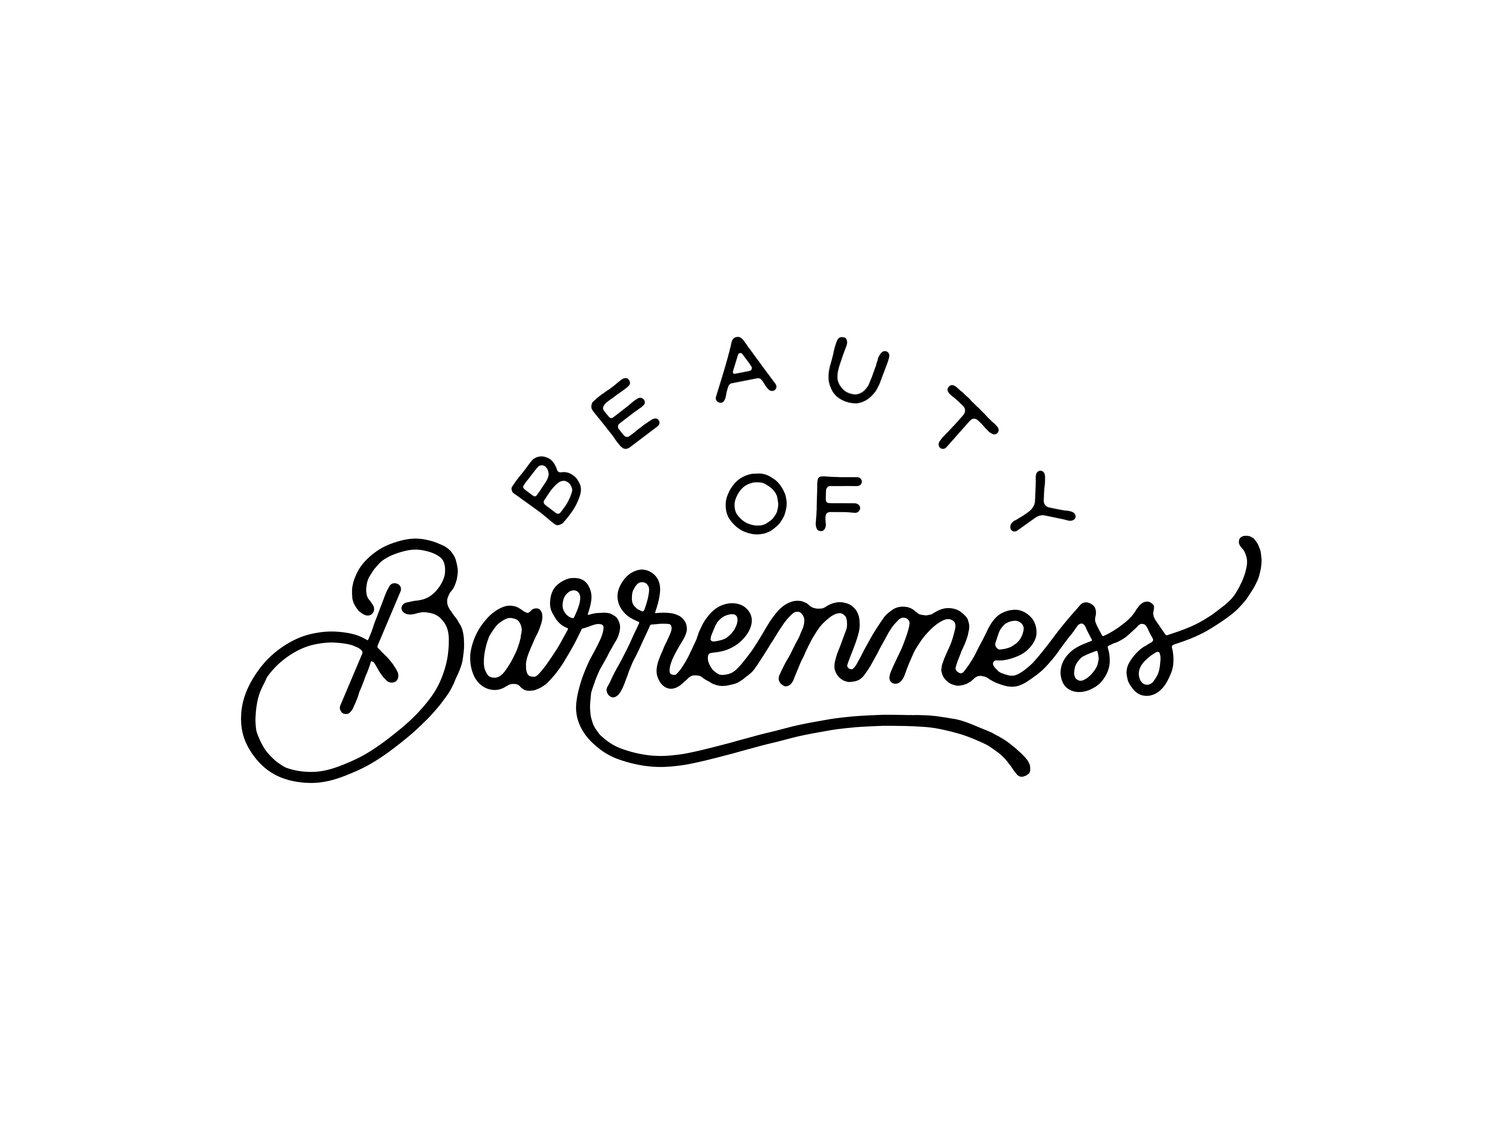 Beauty of Barrenness